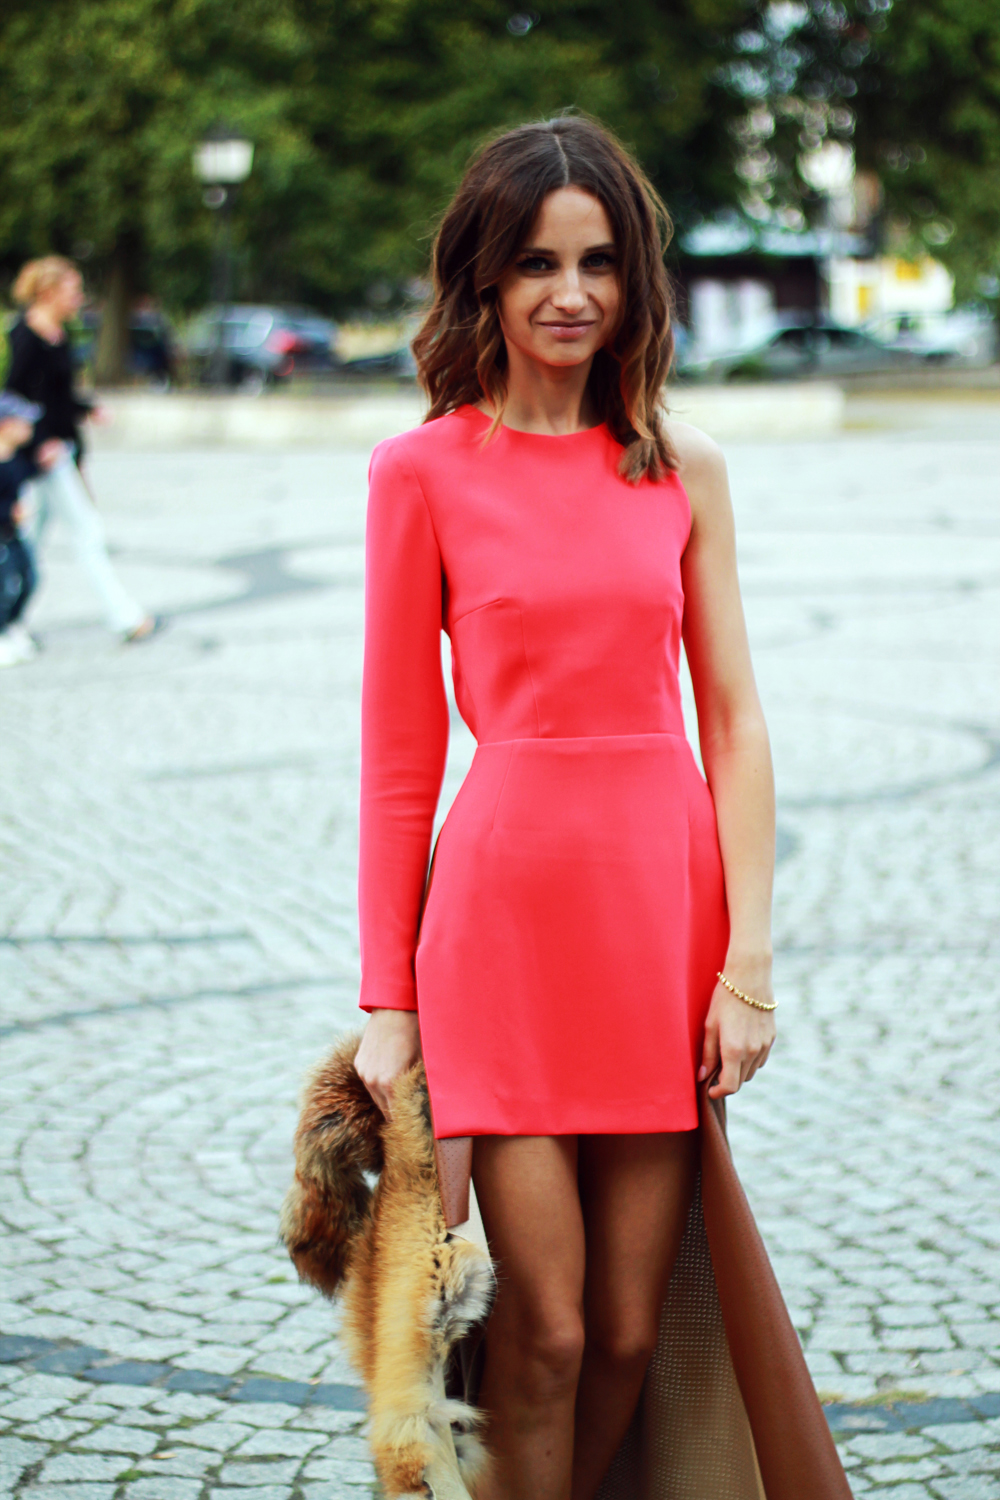 red dress original chic outfit clothes tumblr girl vogue lookbook ootd brunette